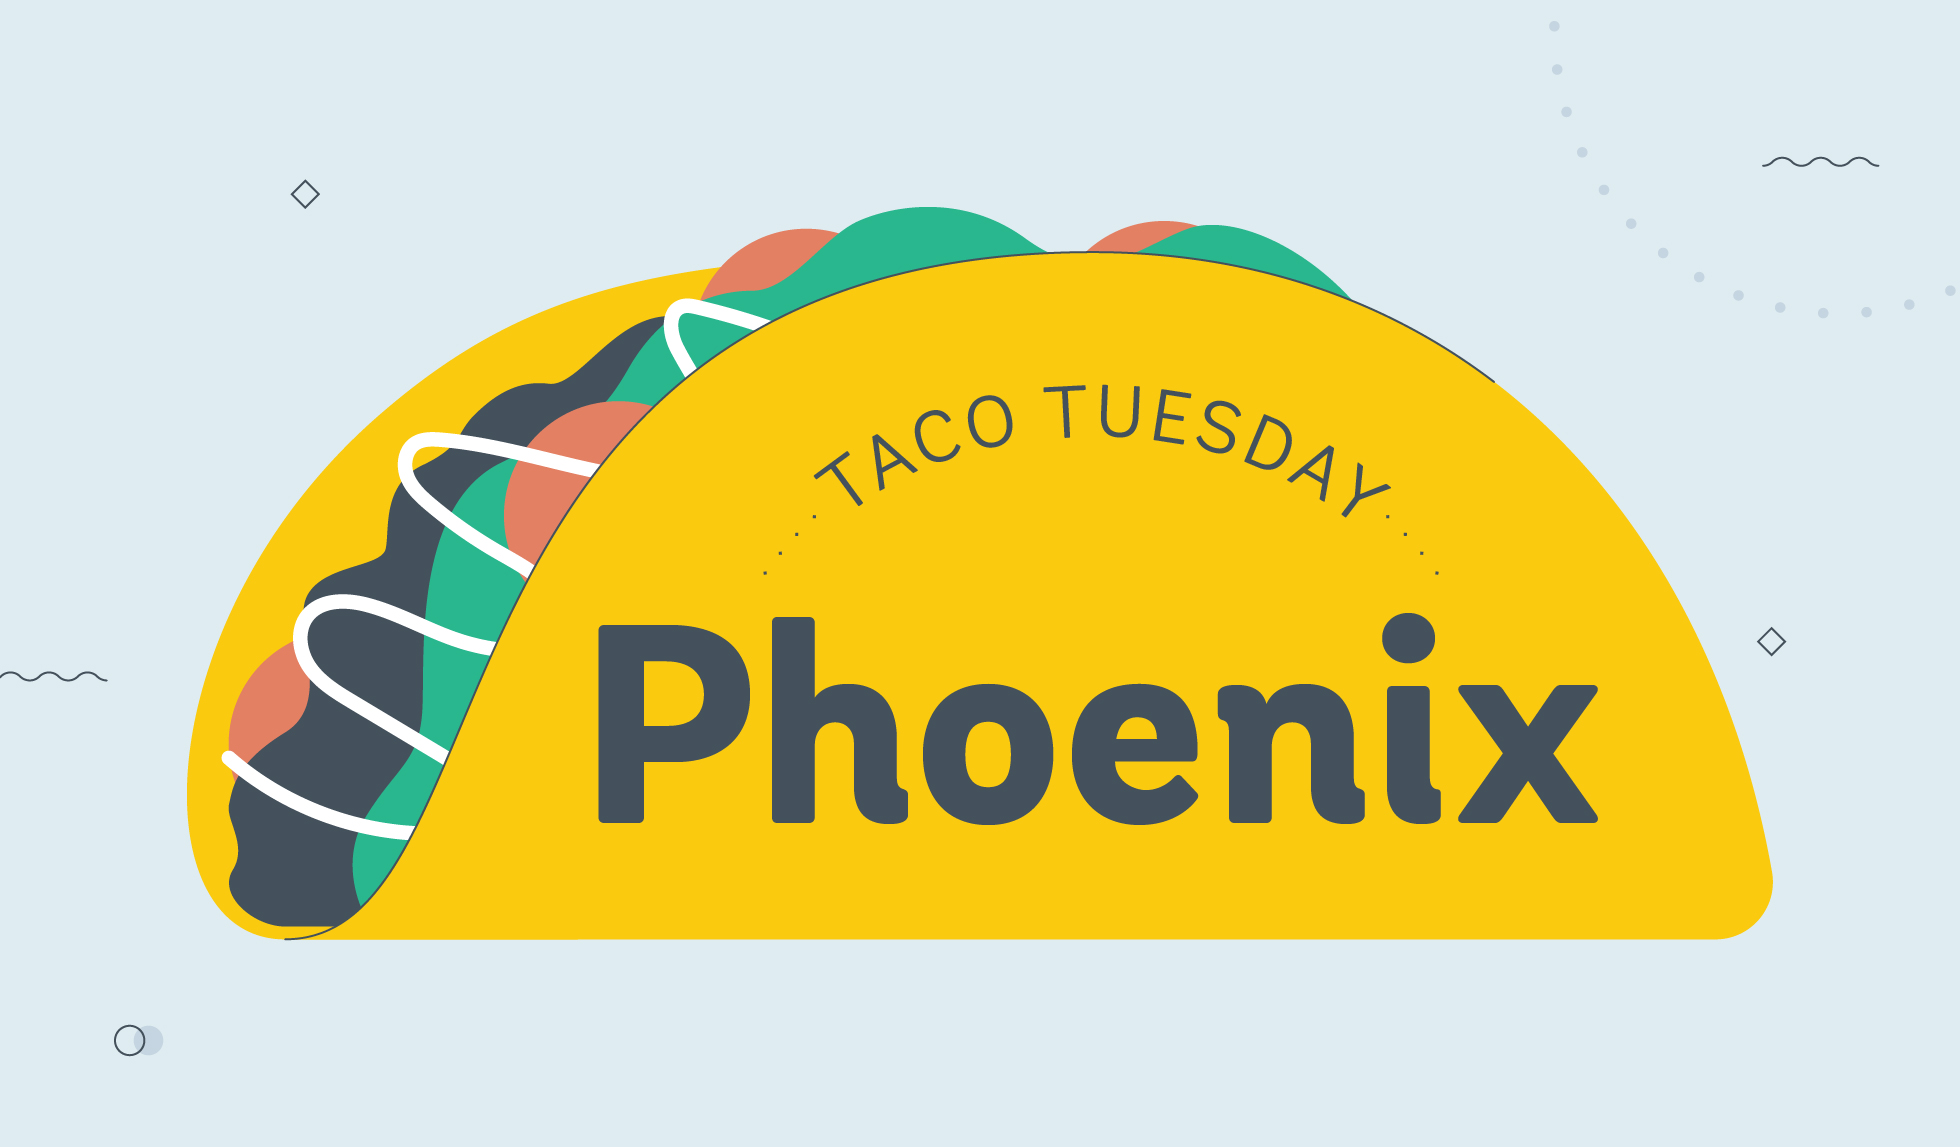 taco tuesday phoenix graphic